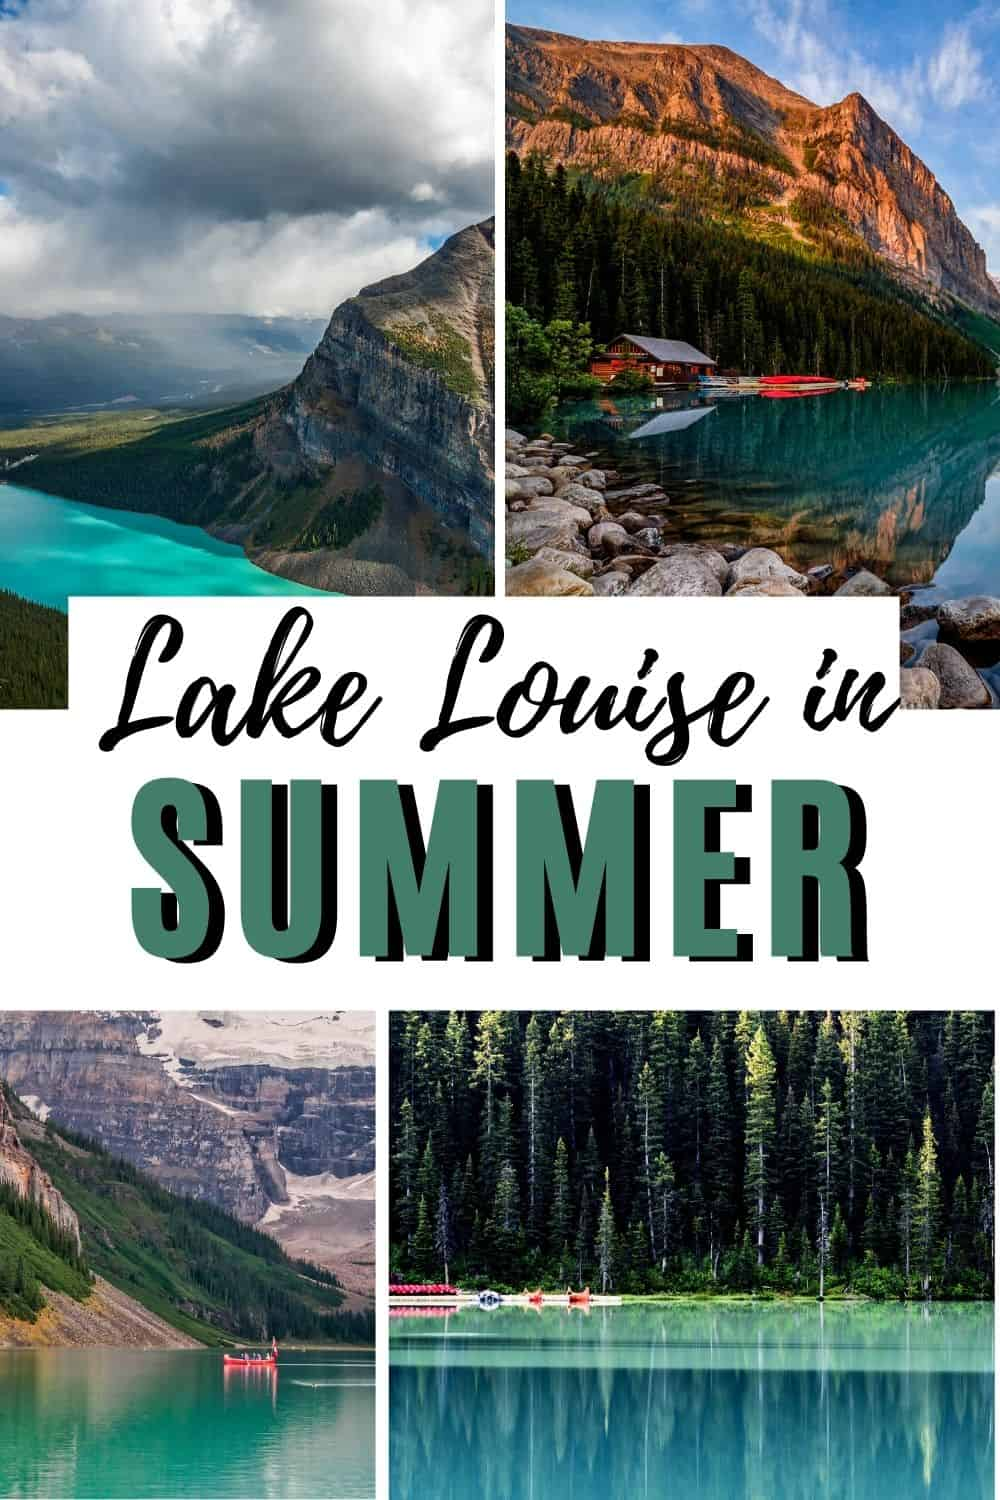 First-Timers guide to Summer in Lake Louise- all the things to do, what you need to know, and tips for the lake louise summer gondola, canoeing on the lake, and Banff National Park. #Lakelouise #banfflakelouise #summerinbanff #summerinlakelouise